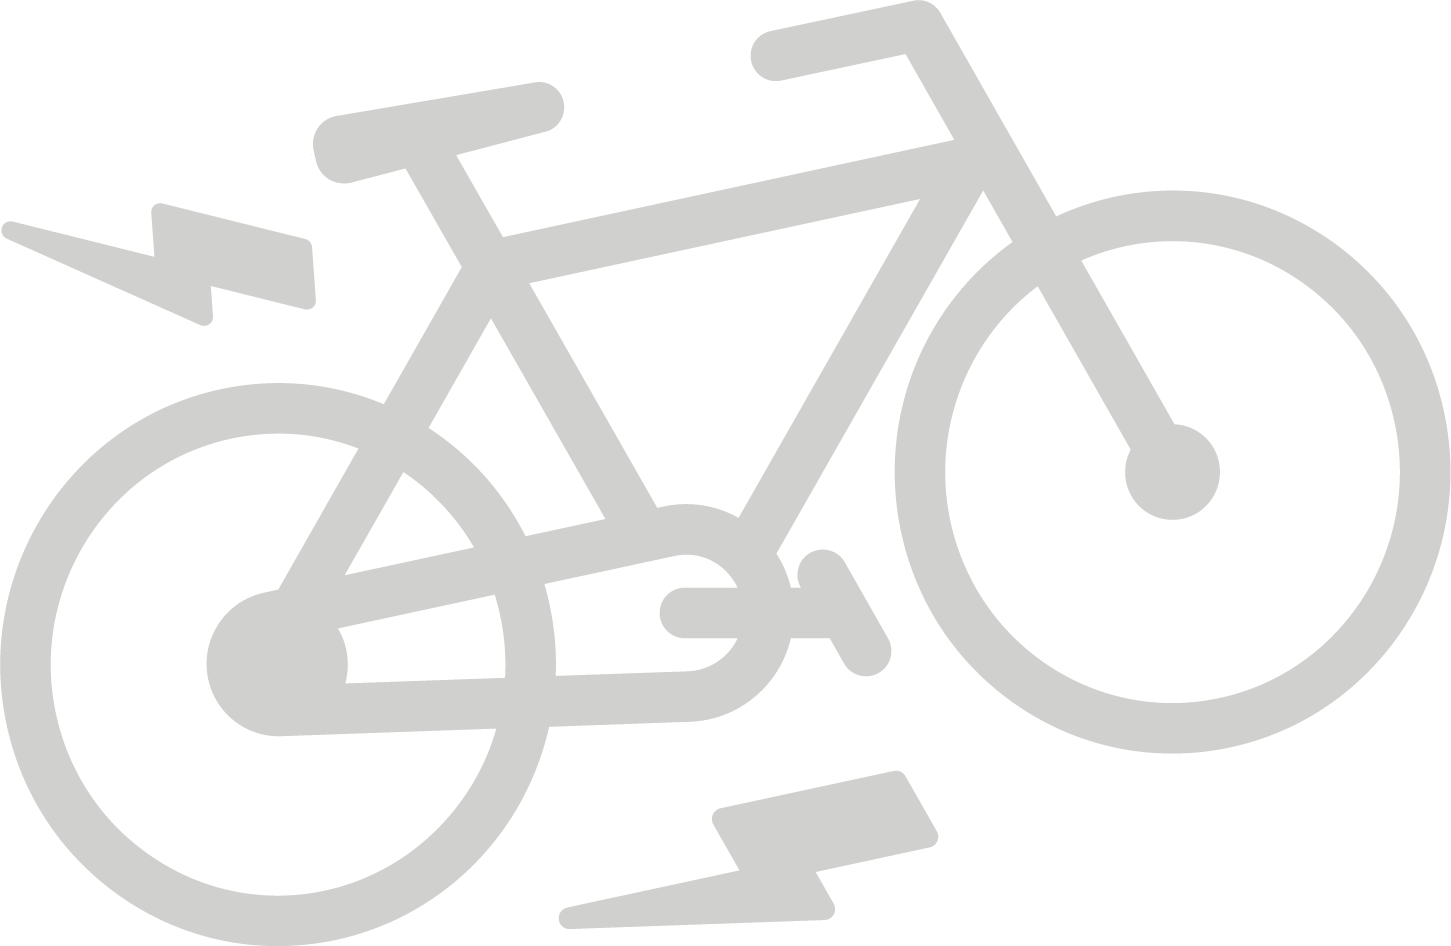 BrewBike_Bike_Gray.png